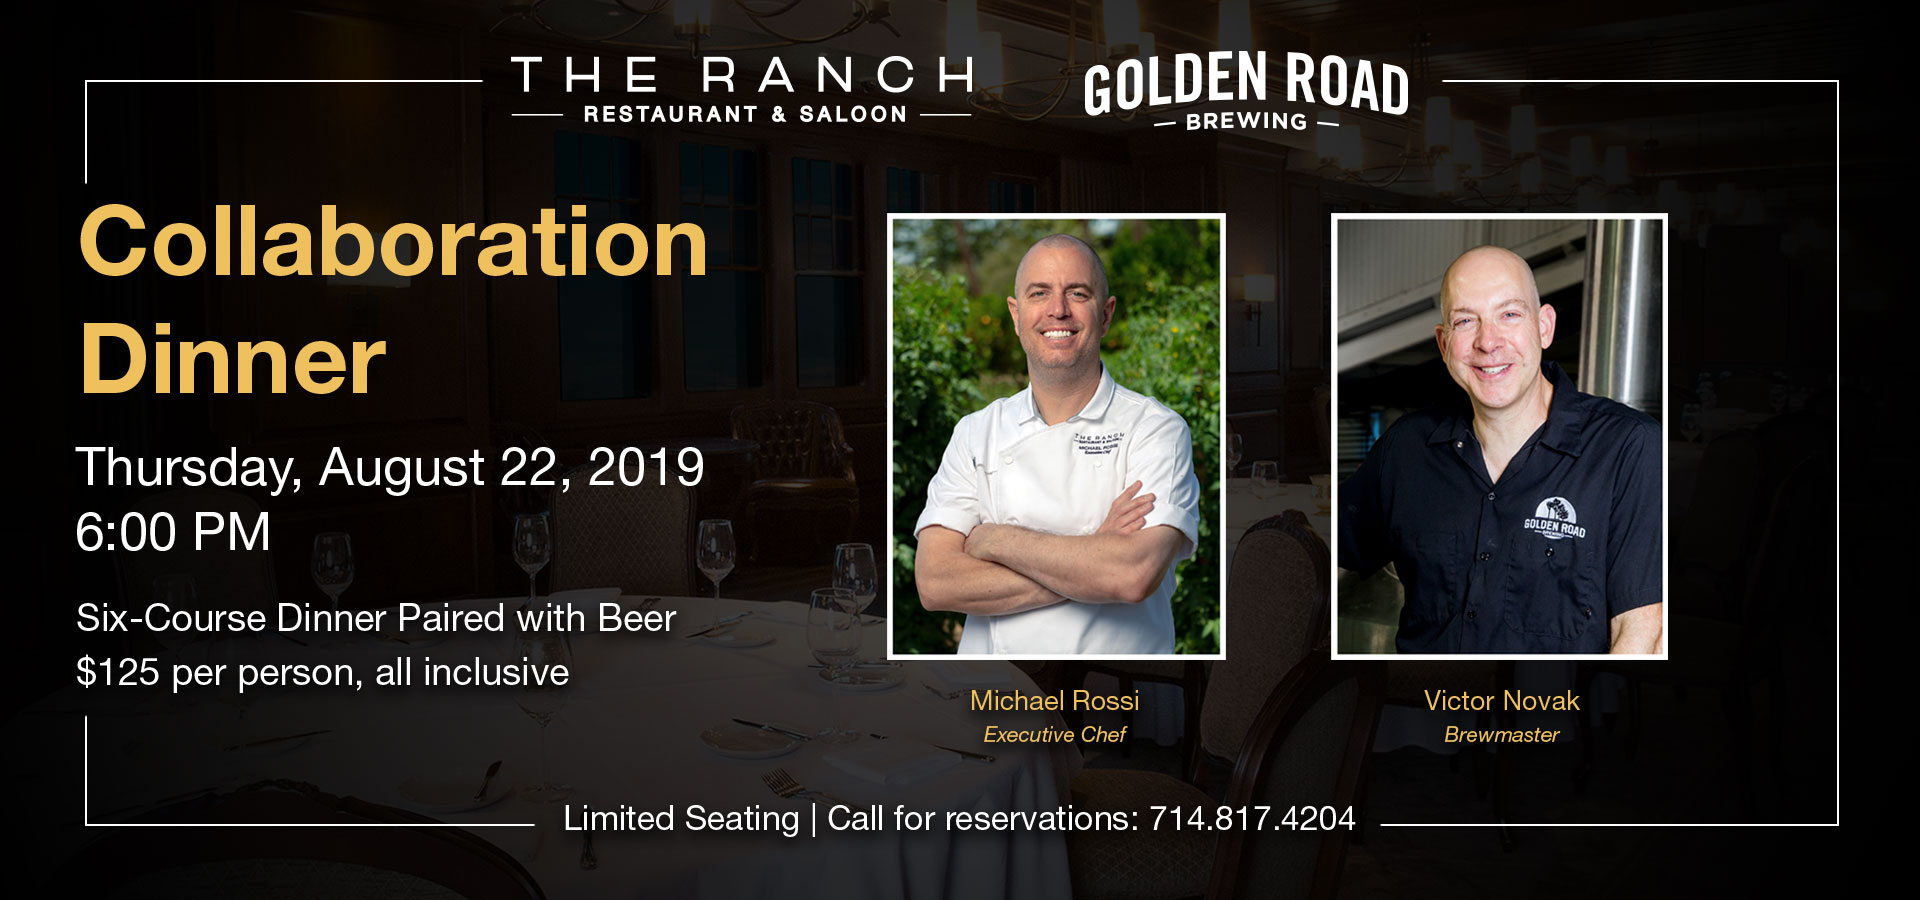 Executive Chef Michael Rossi of THE RANCH Restaurant & Saloon is set to collaborate with Brewmaster Victor Novak of Golden Road Brewing for THE RANCH's first ever Beer Dinner